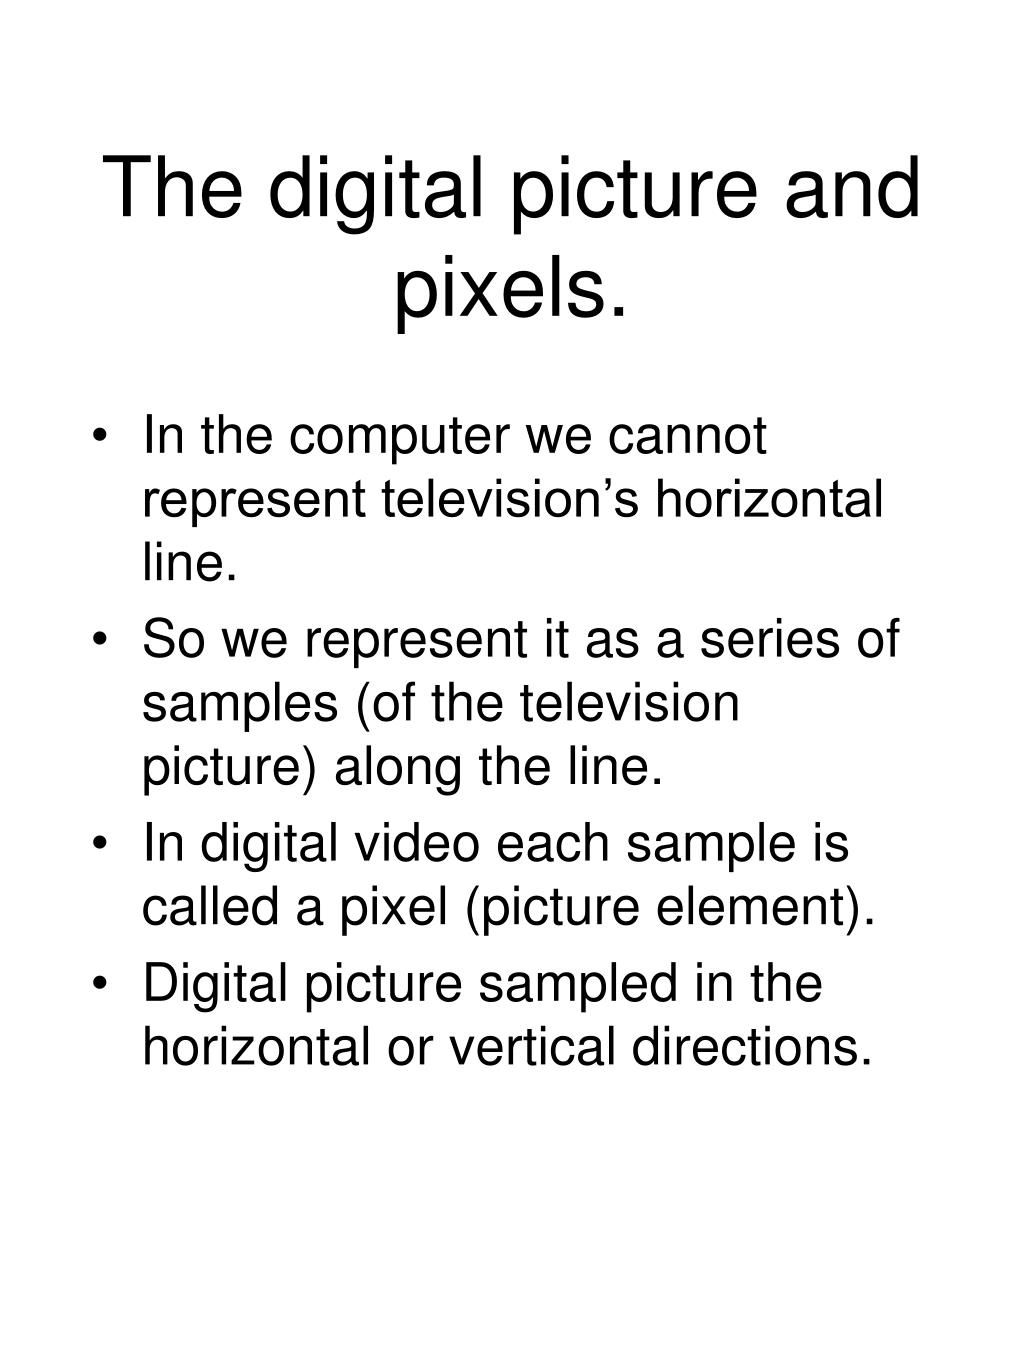 The digital picture and pixels.